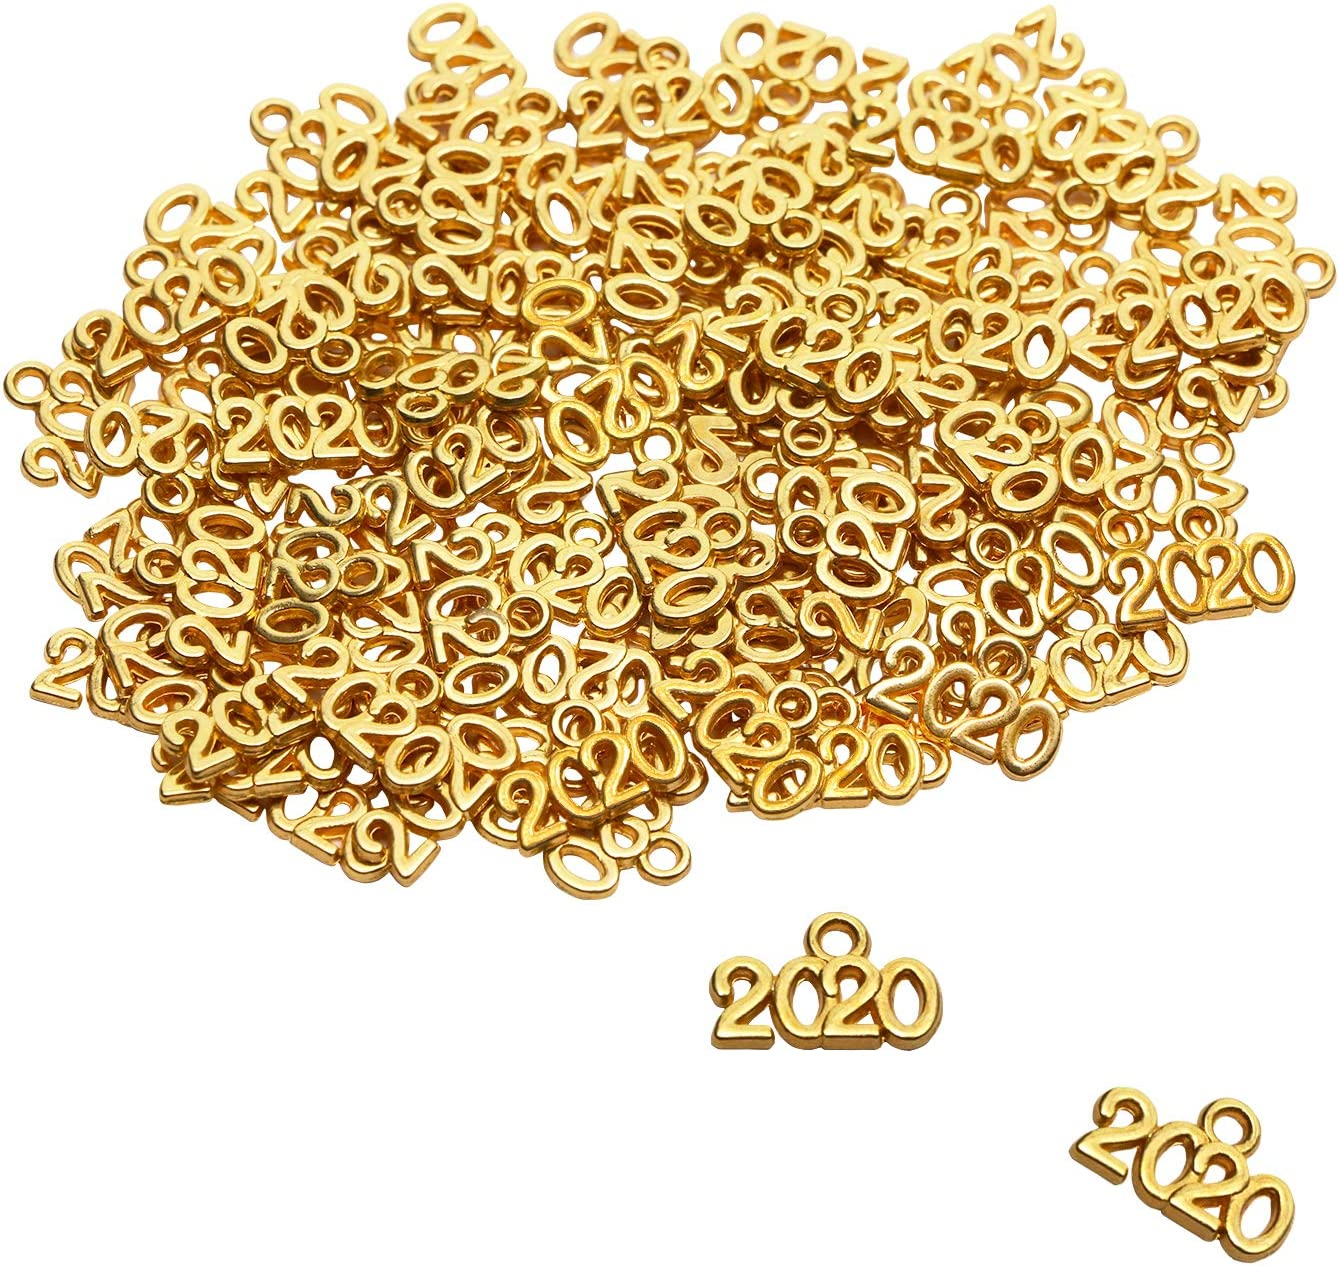 Tupalizy 100pcs 9x13mm Mini Alloy Year 2020 Charm for Graduation Tassel Necklace Pendant Bracelet Earrings Keychain Jewelry Findings Making Accessory DIY Crafting Wedding Decor (Gold)